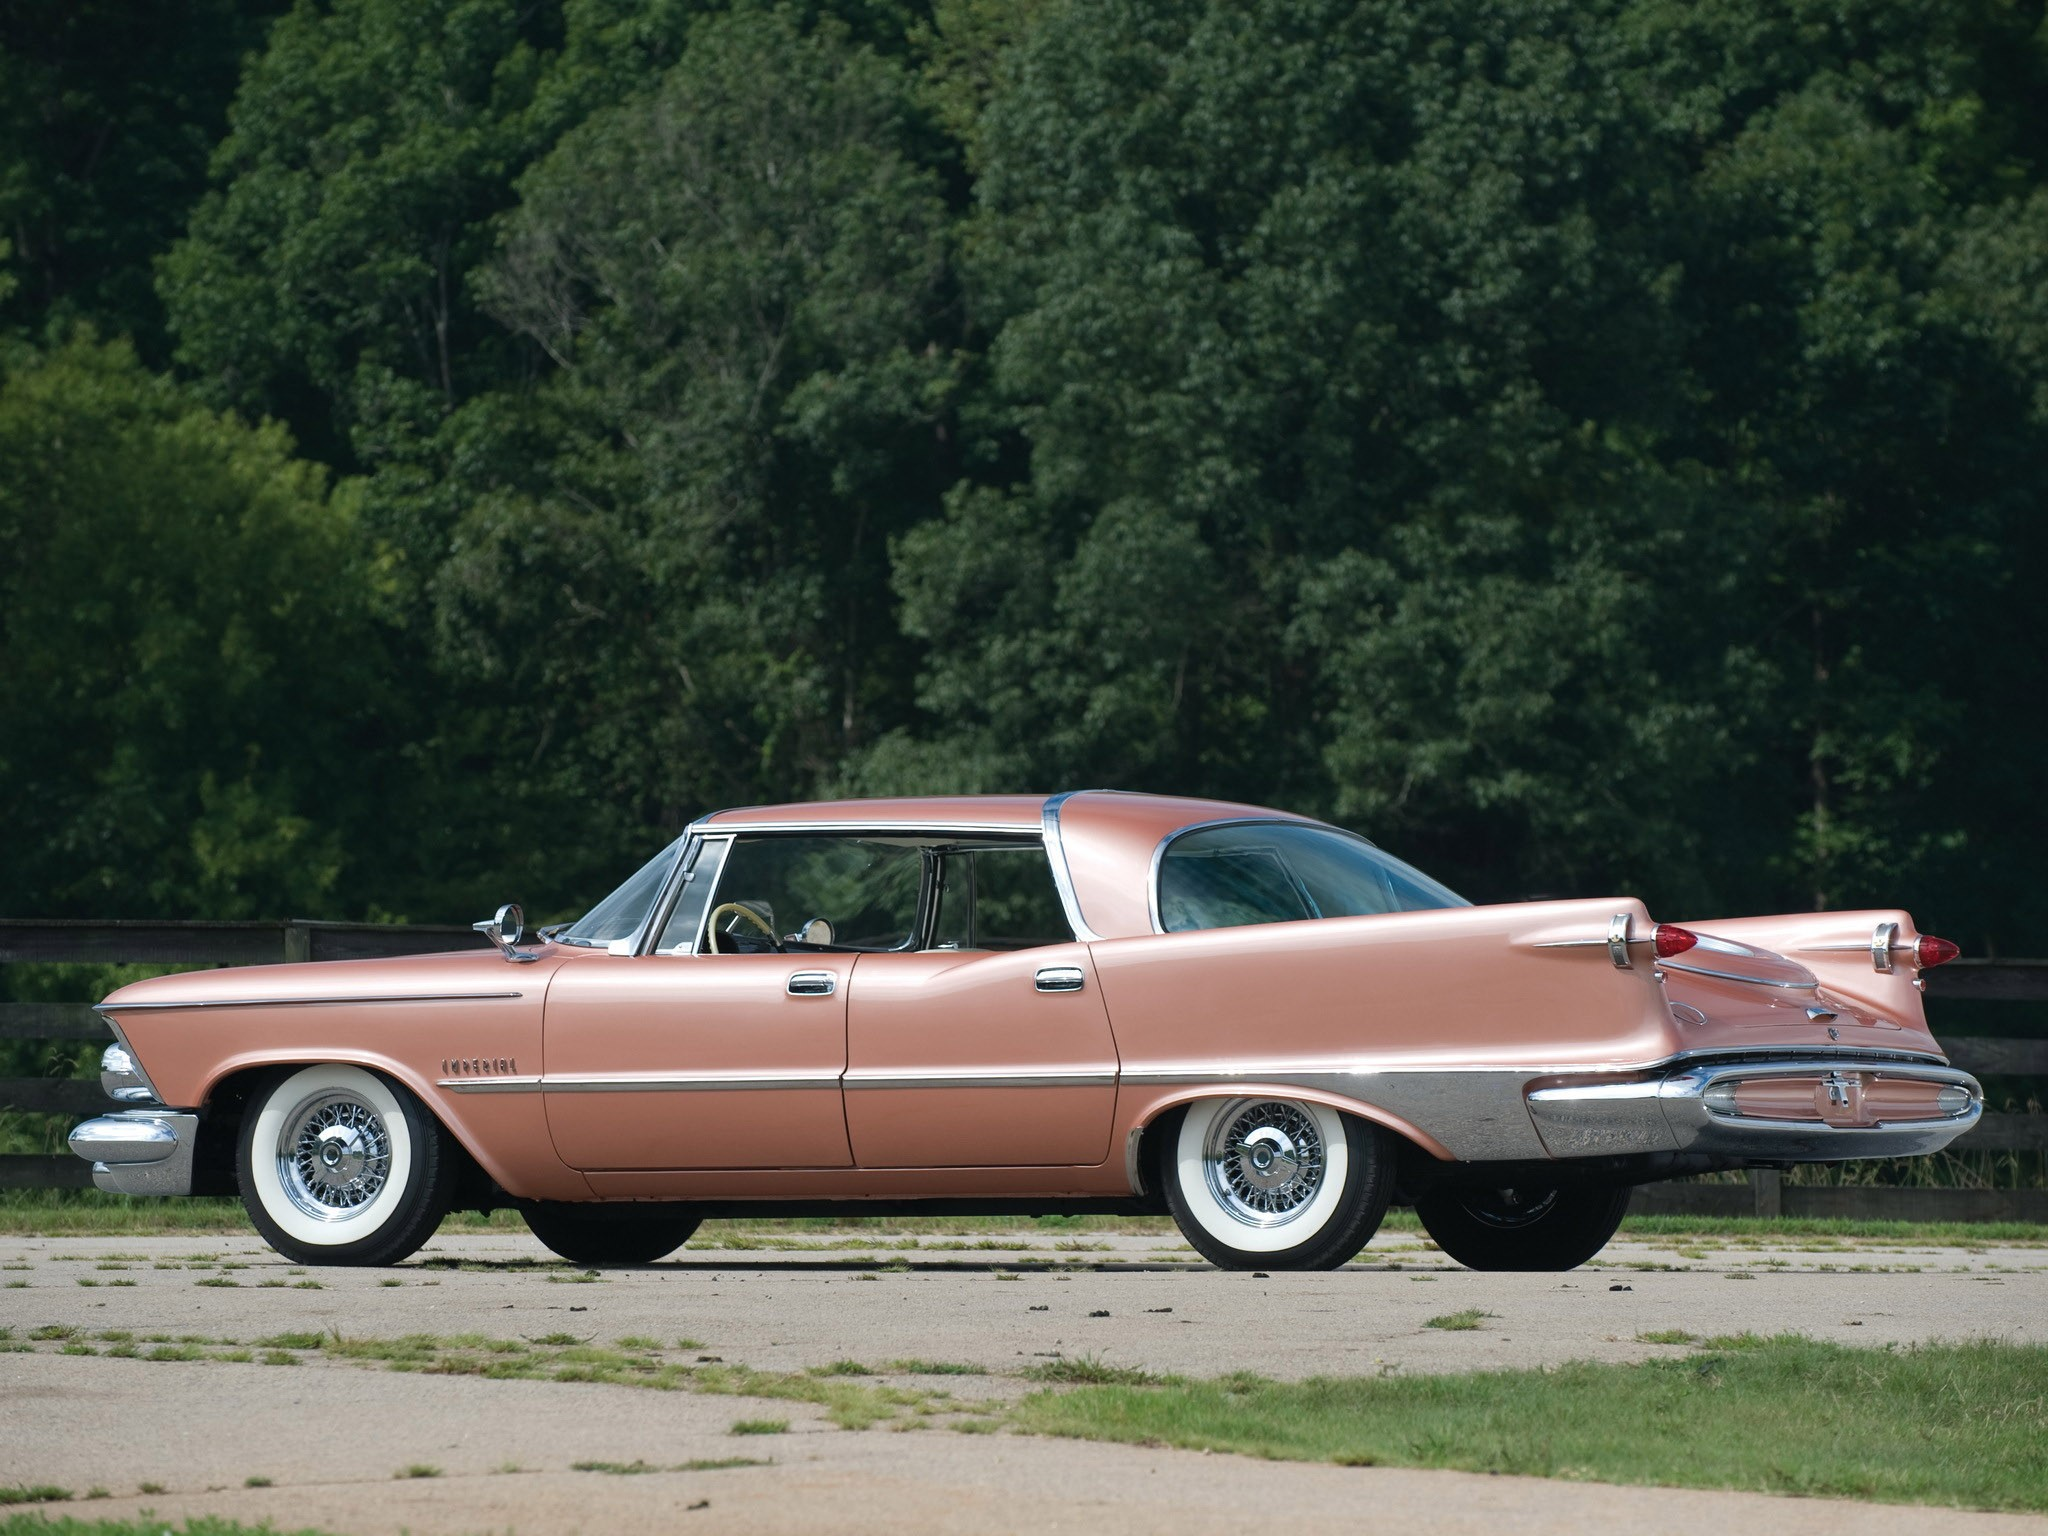 1959 Chrysler Imperial Crown Southampton